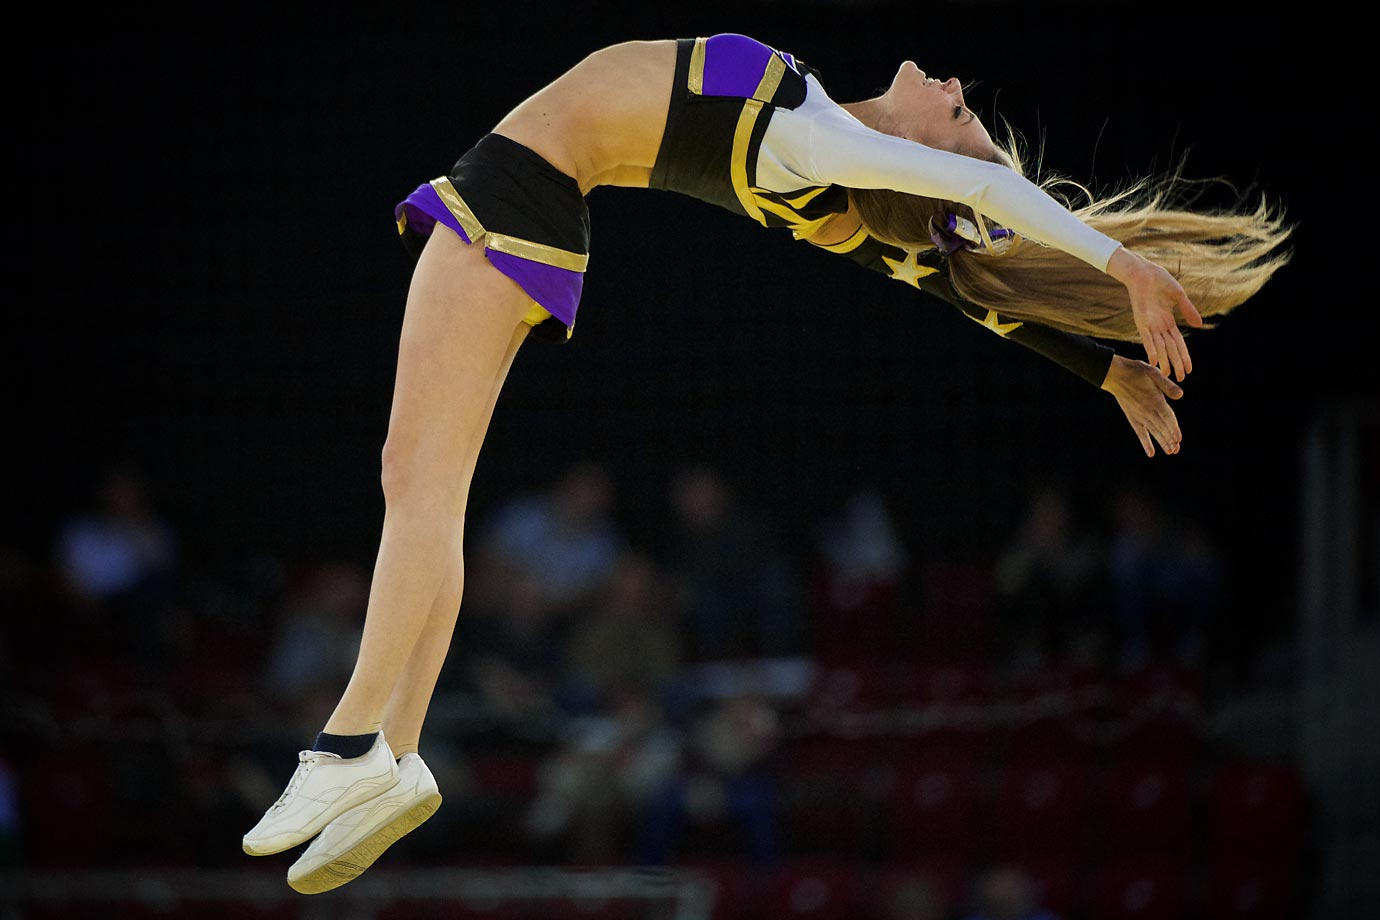 A cheerleader flies through the air during a break in the game action at the Women's Handball EURO 2014 championship.